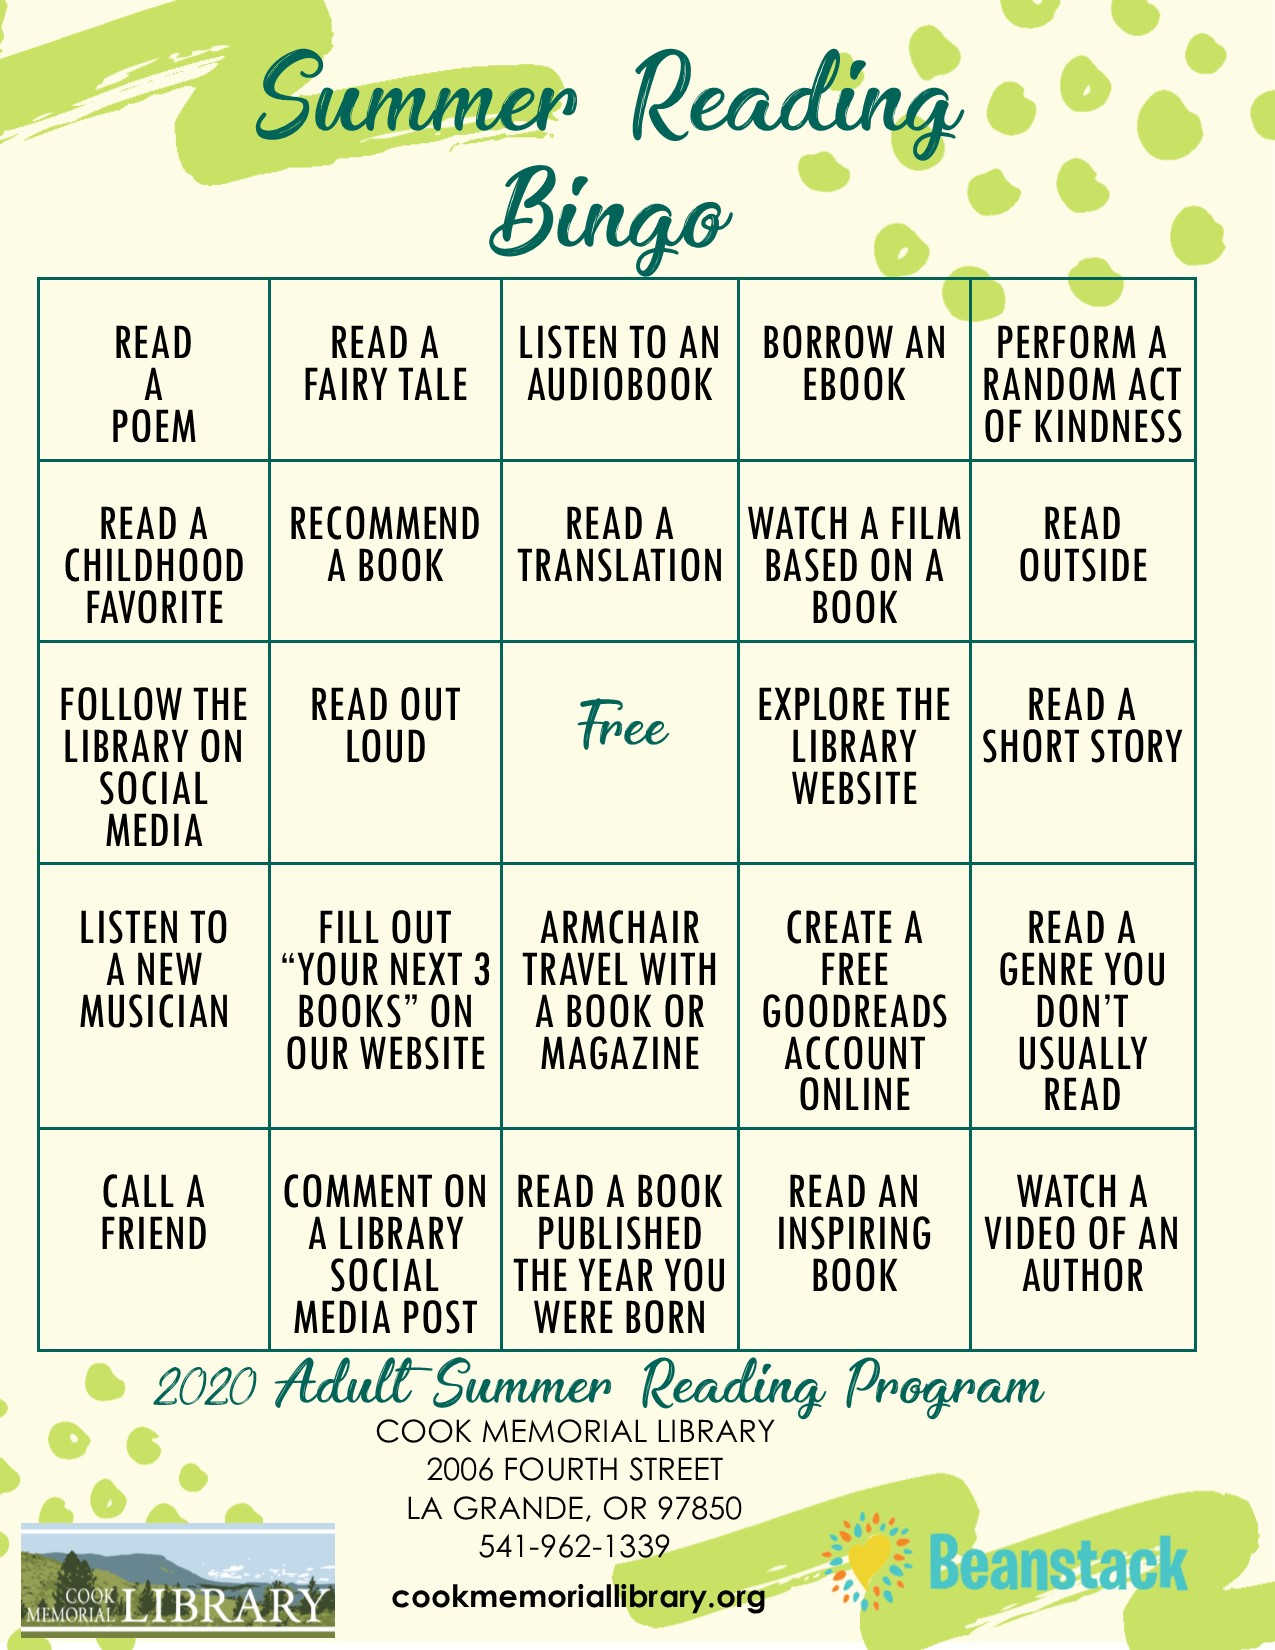 Summer Reading Program Bingo Card